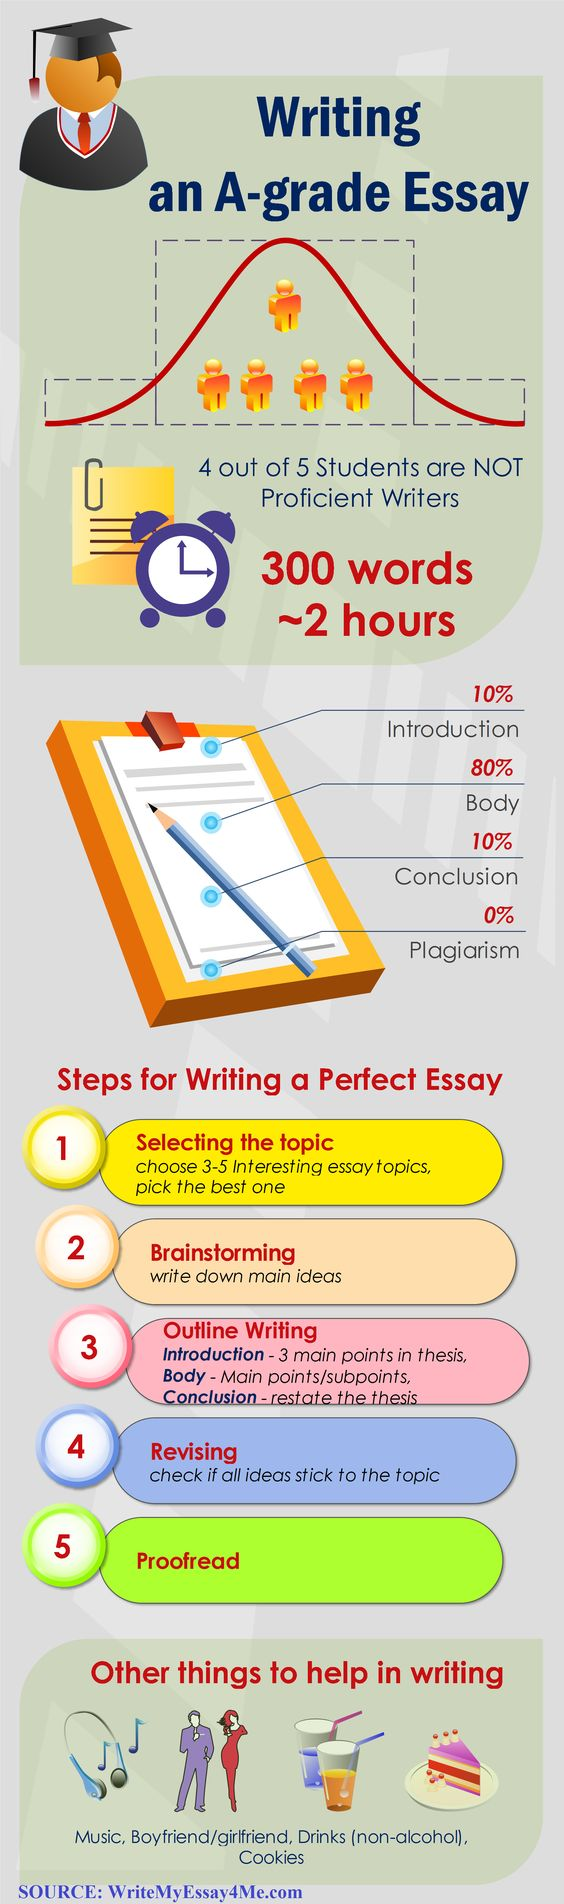 Can i have help making my essay better?